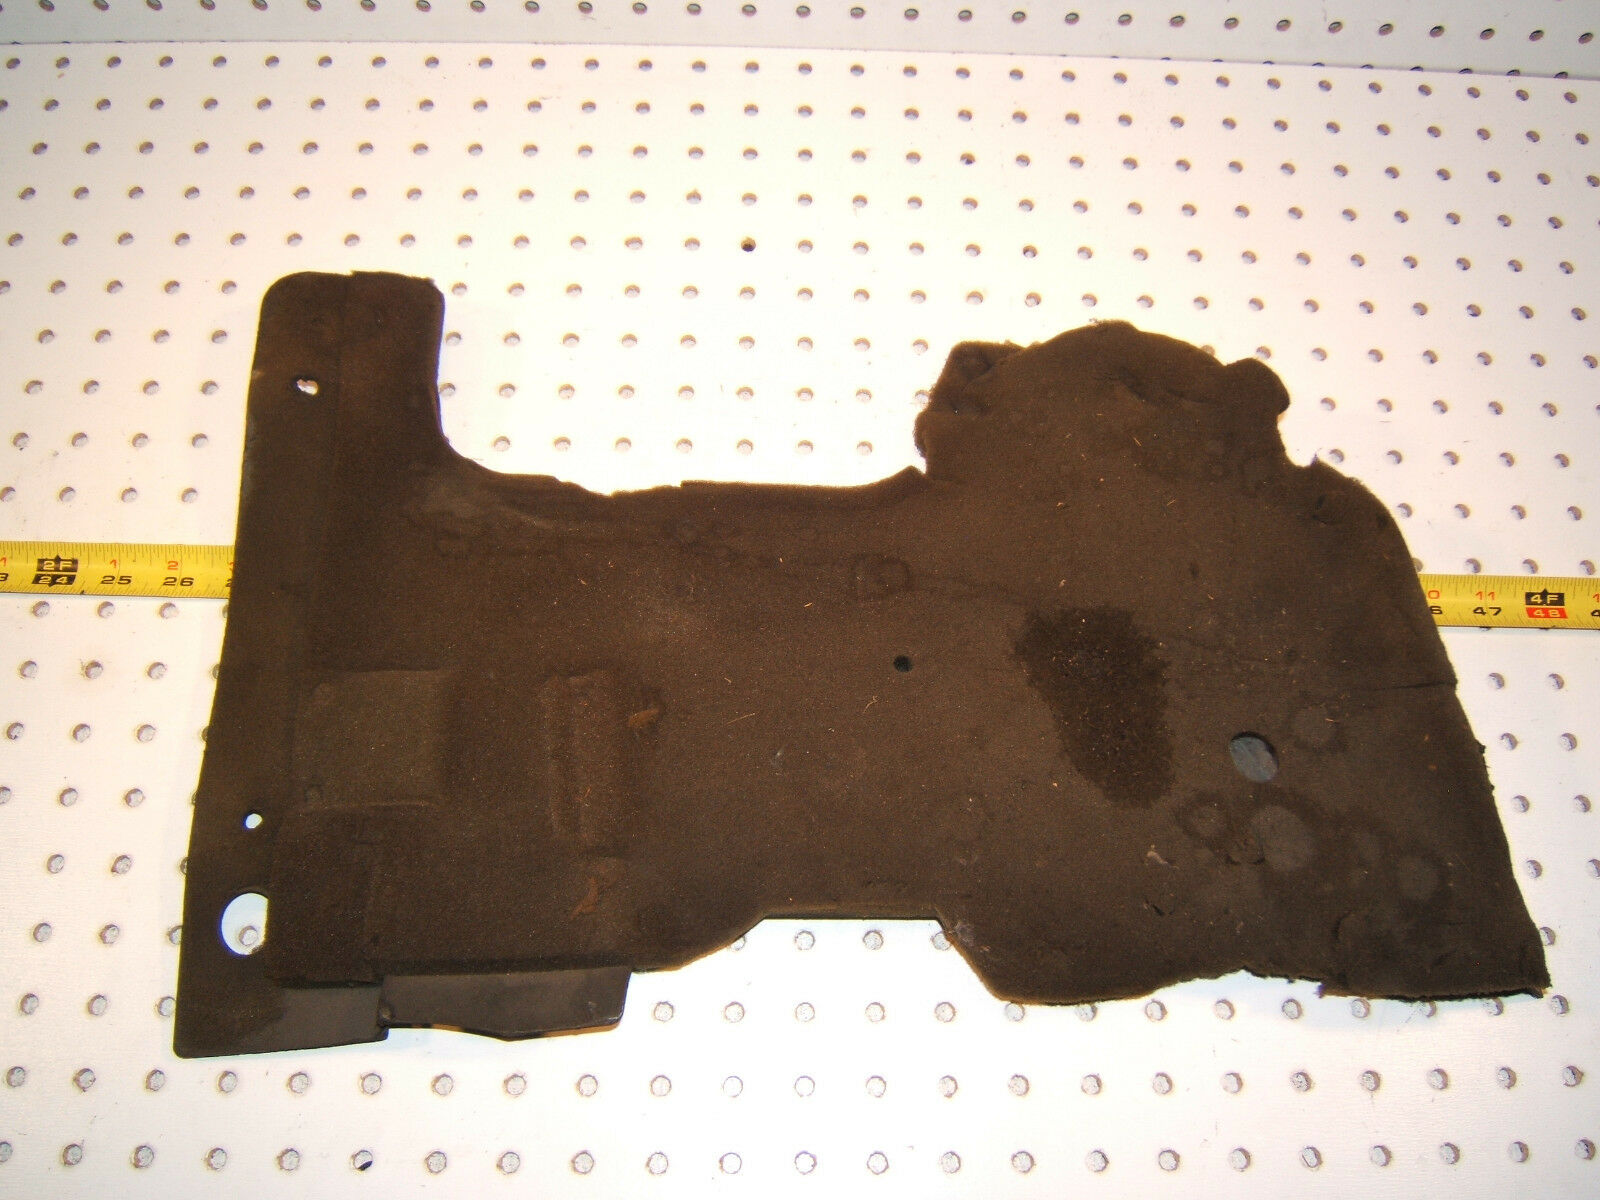 Interchange Part Number Type #4 Late models,30 day limited warranty